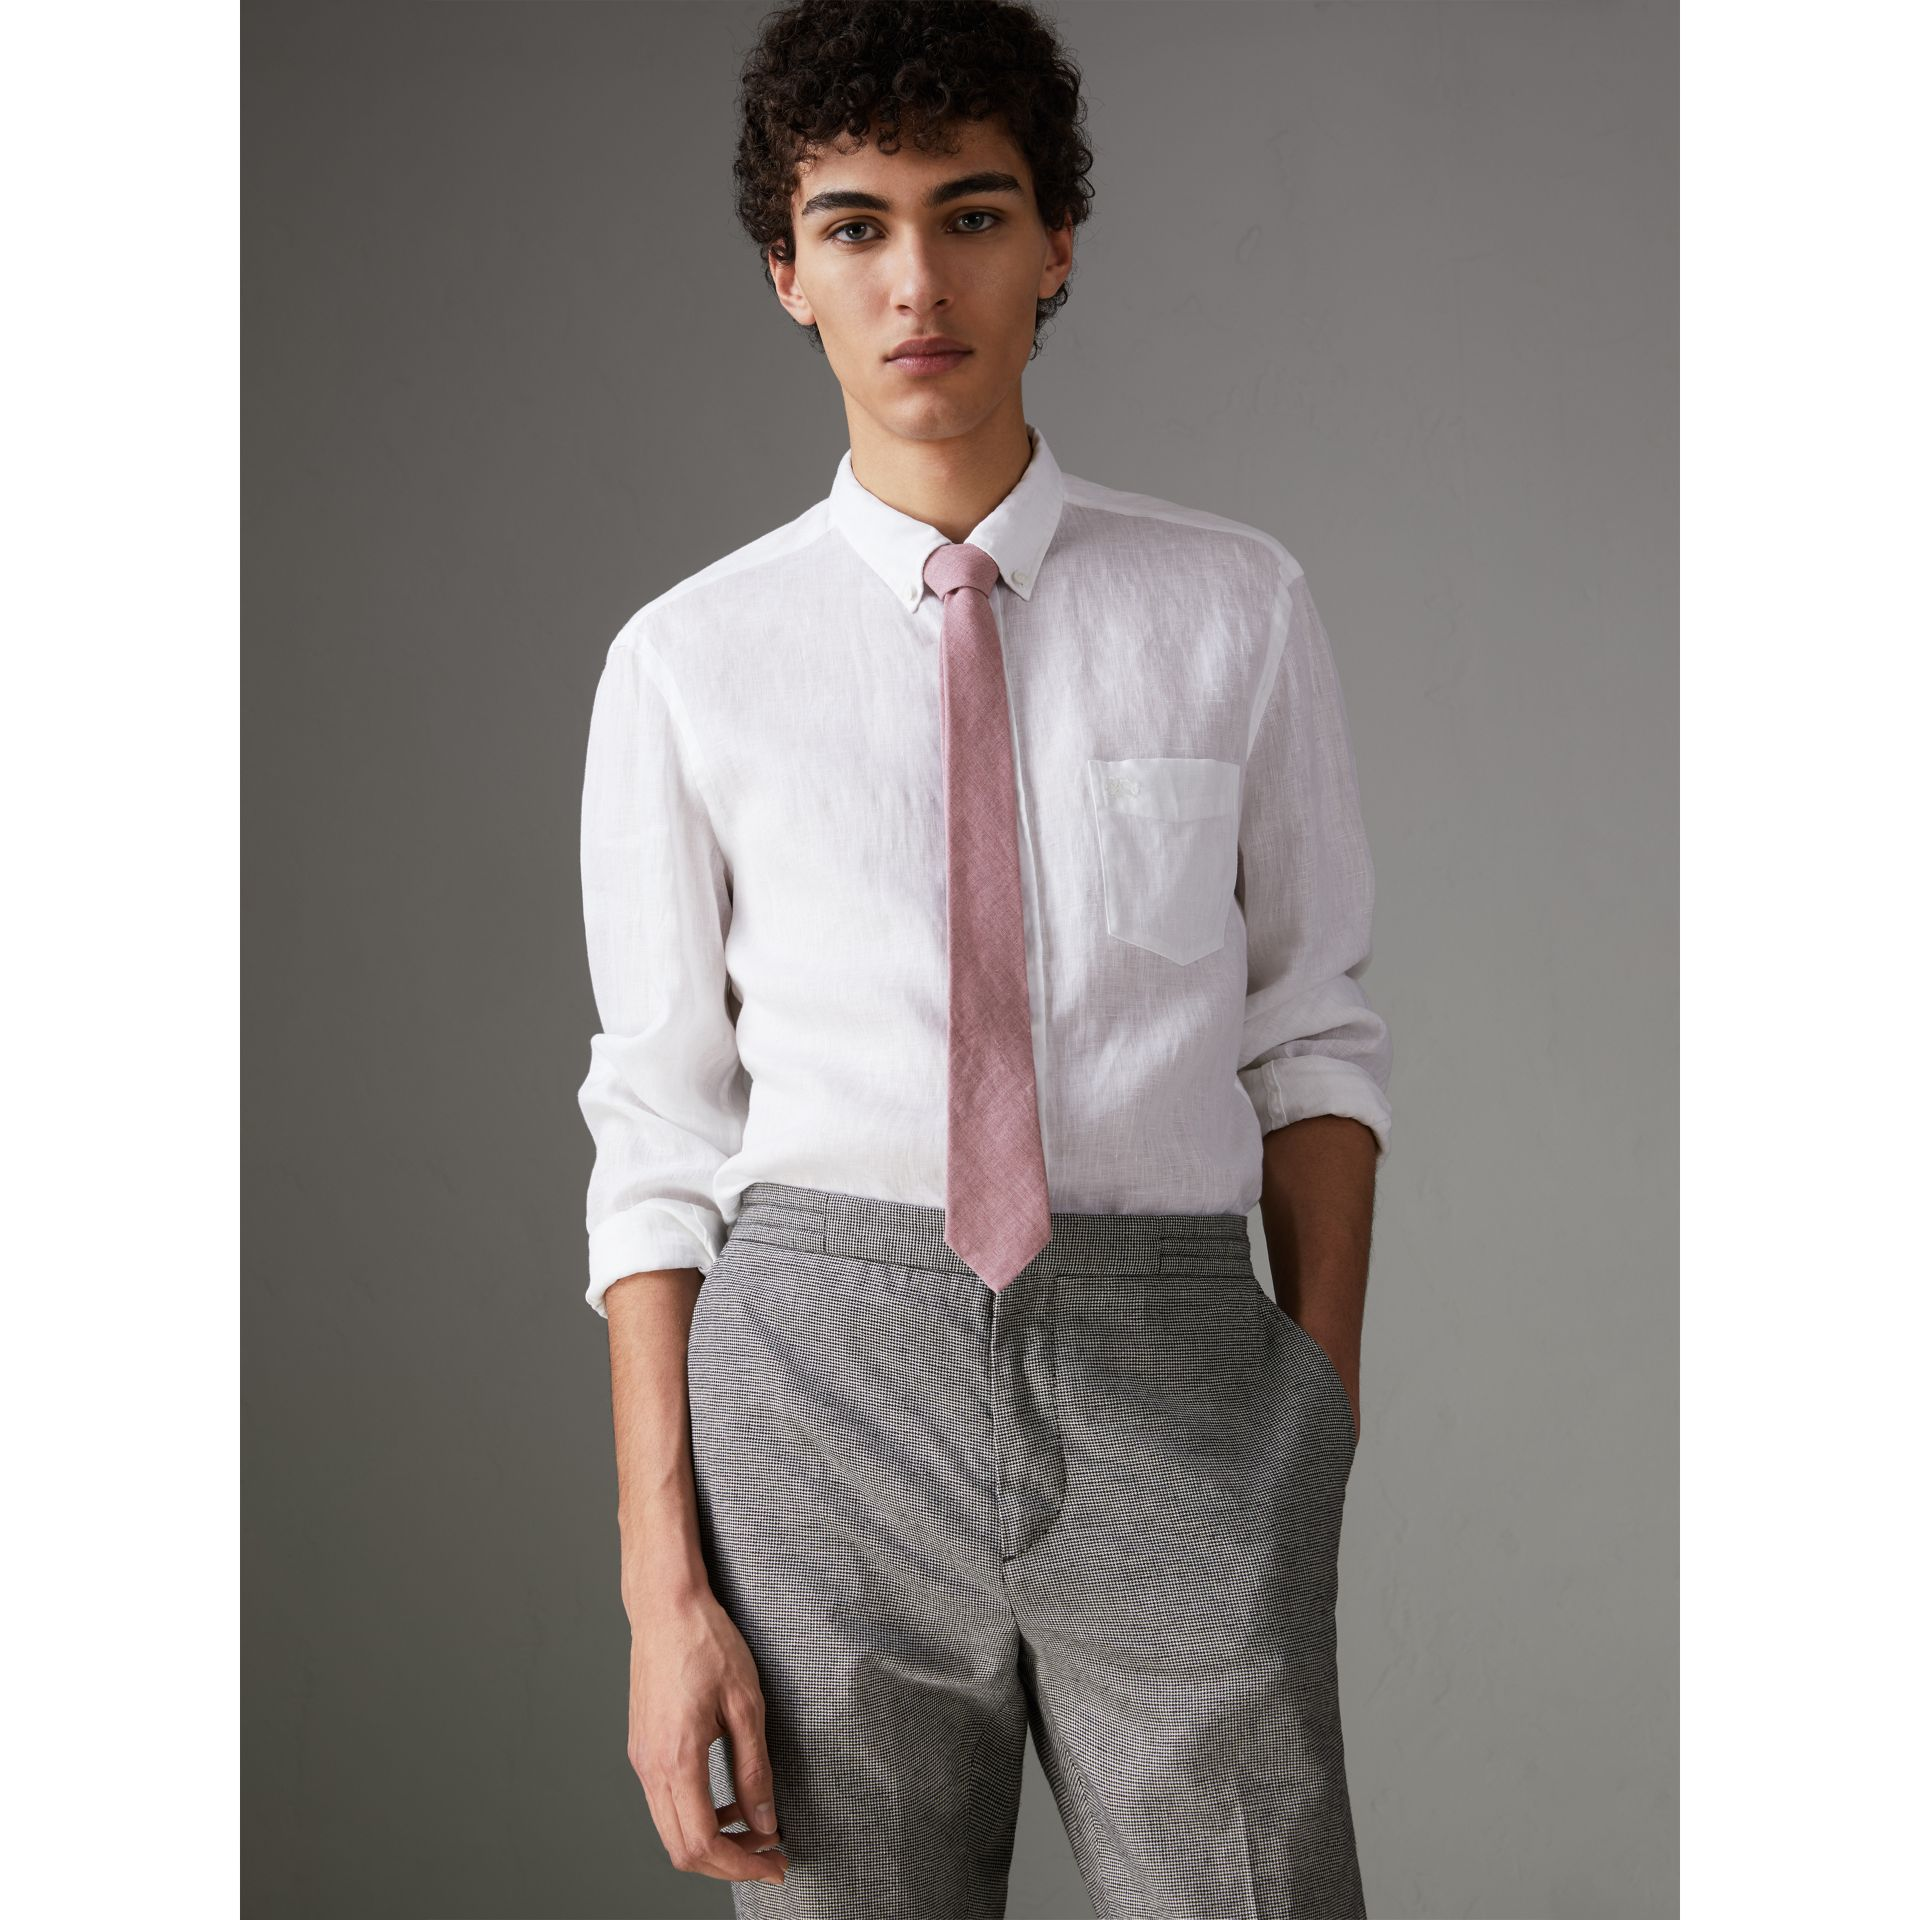 Slim Cut Linen Tie in Pink Heather - Men | Burberry Australia - gallery image 3